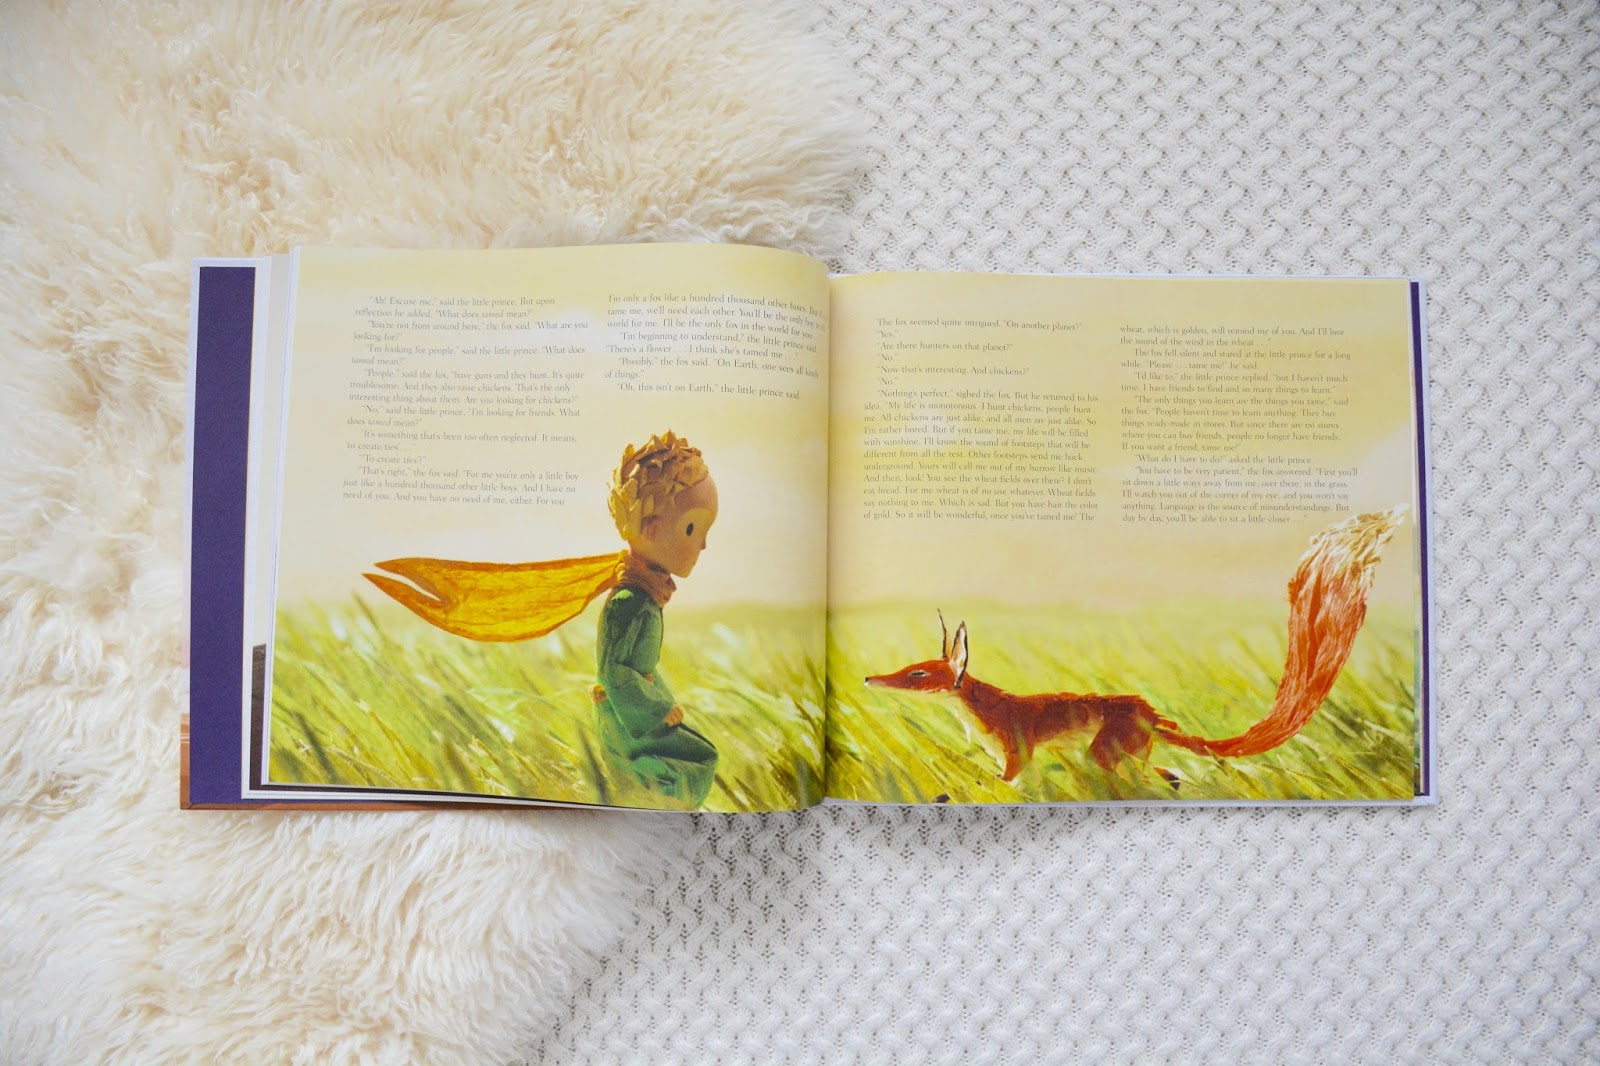 book review of the little prince The little prince has 6 reviews and 2 ratings reviewer awesomessb wrote: i am reading the graphic novel in english and so far, it was one of the best books ever.